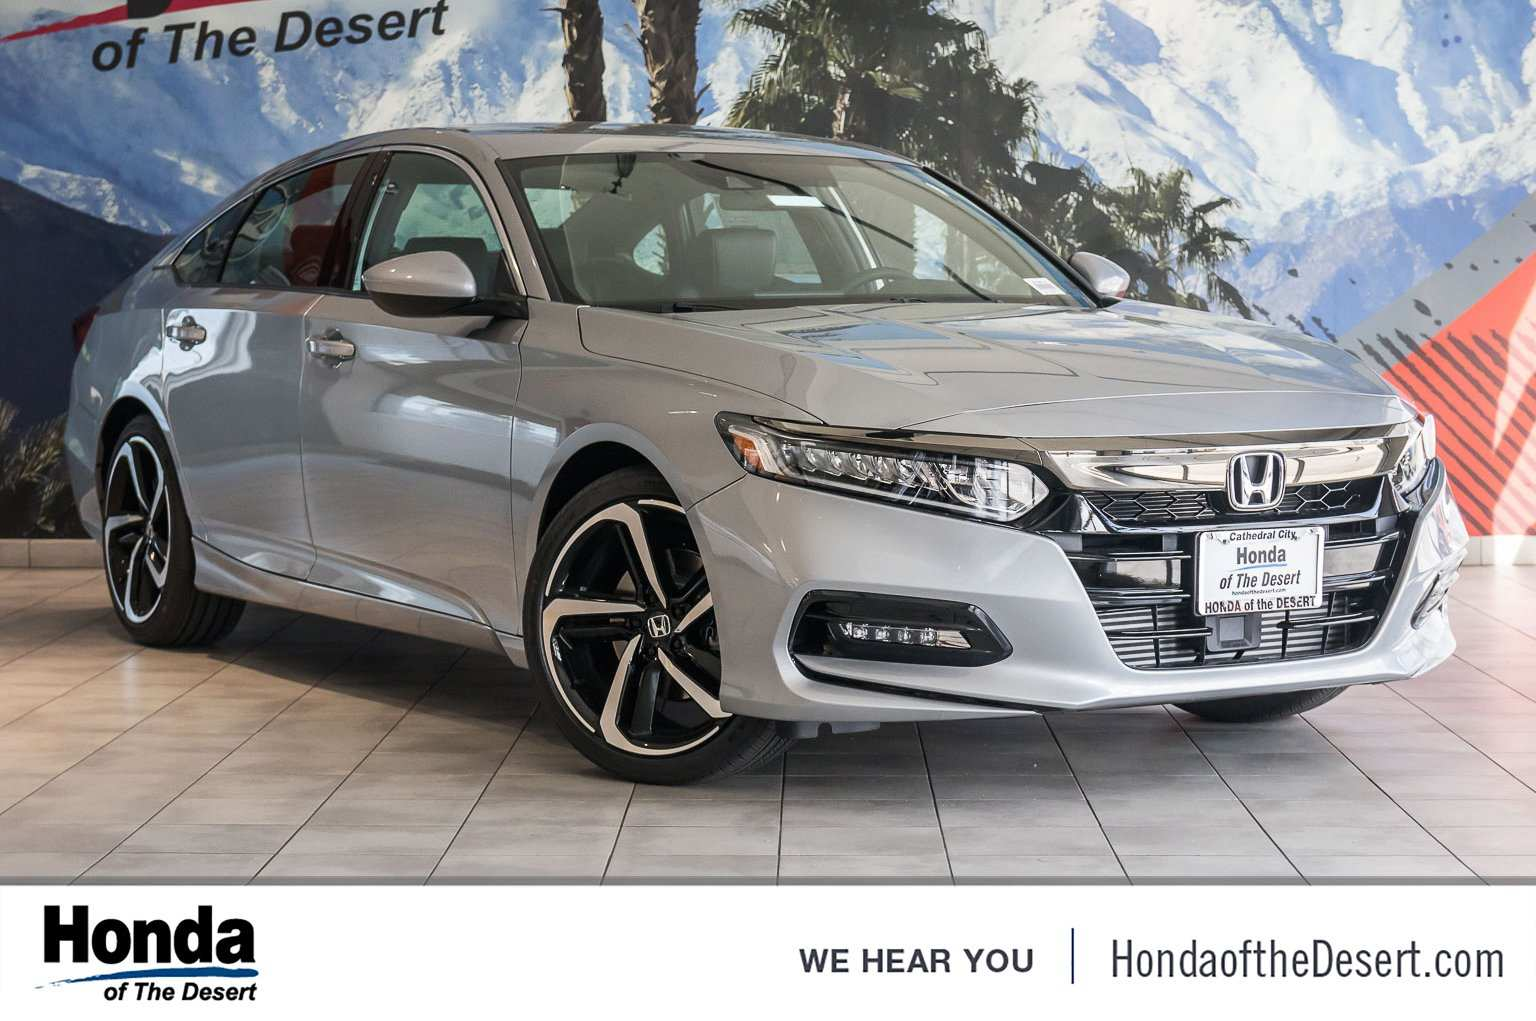 82 All New 2019 Honda Accord Sport Price Design And Review